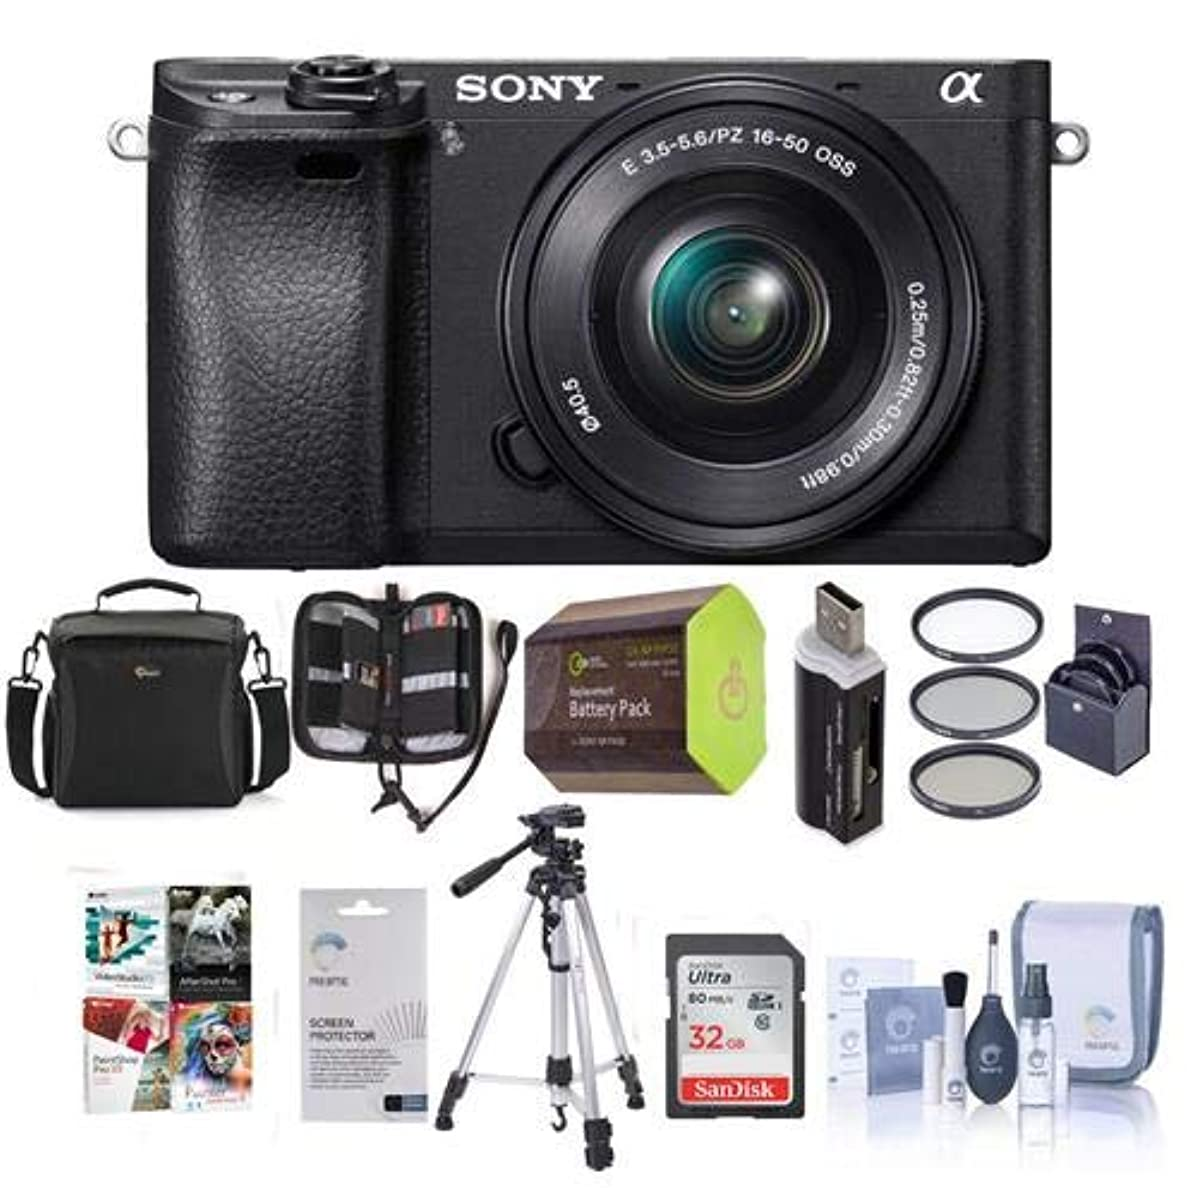 Sony Alpha a6300 Mirrorless Digital Camera Body, Black with 16-50mm E-Mount Lens - Bundle w/ 32GB Class 10 SDHC Card, Case, 40.5mm Filter Kit, Spare Battery, Cleaning Kit, Software Package and More